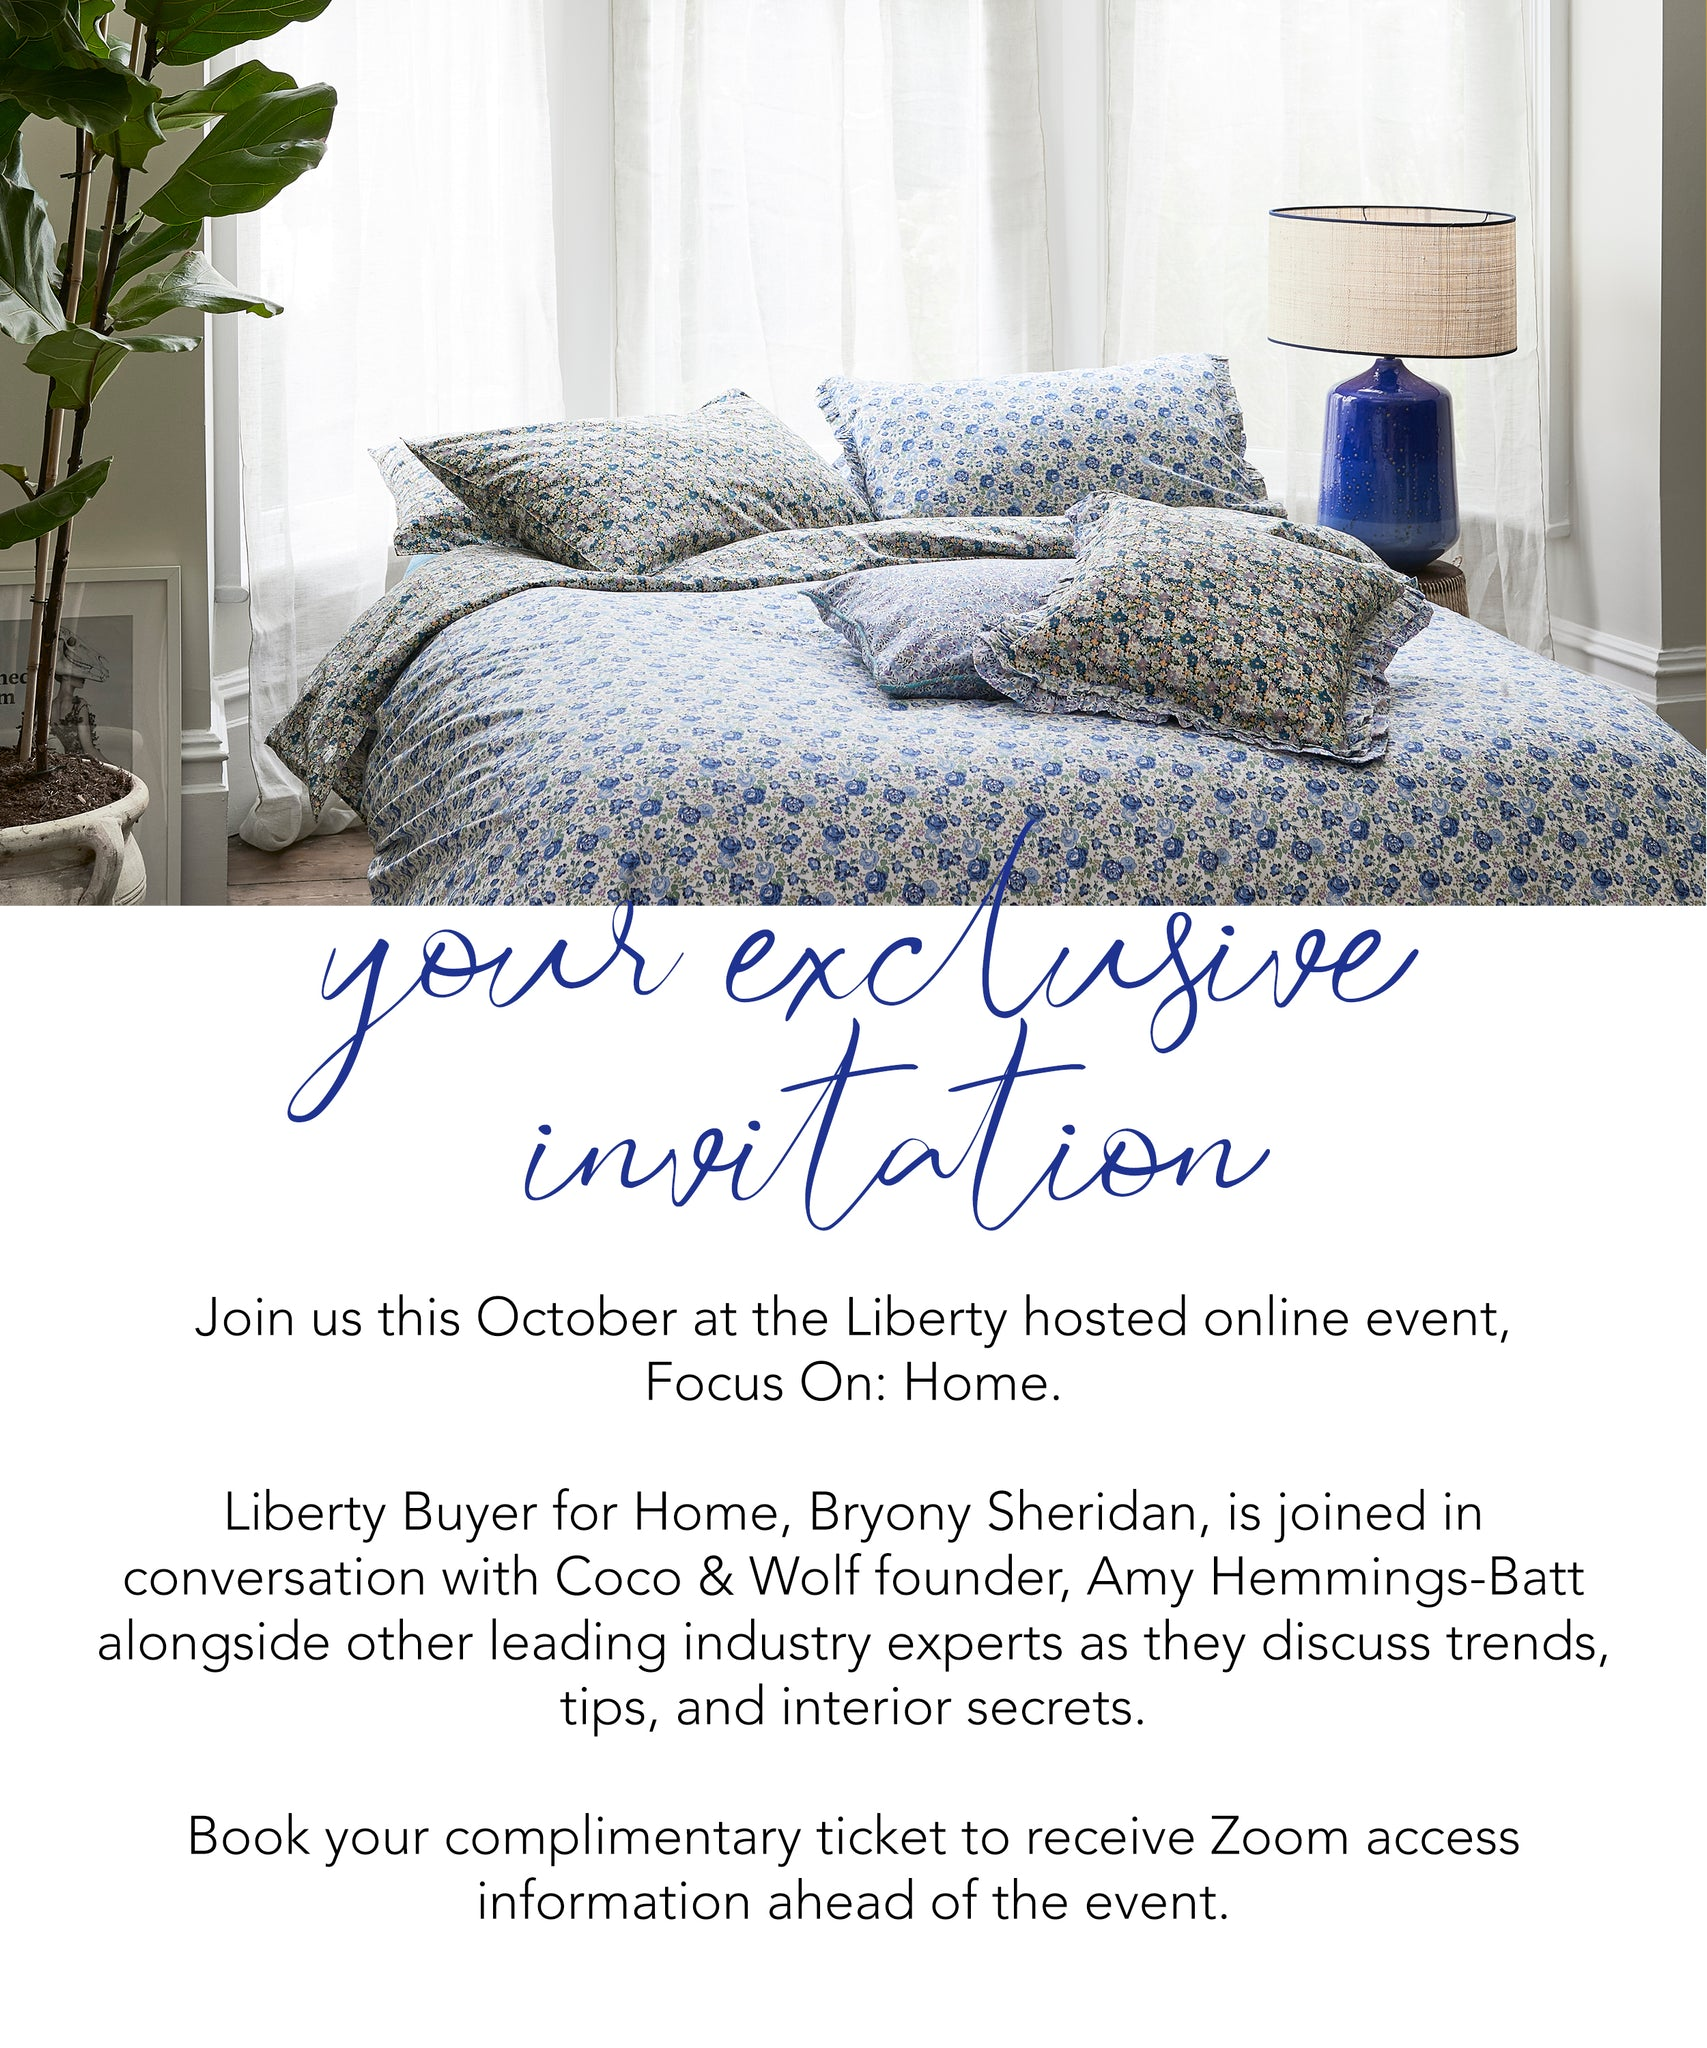 Exclusive invitation to Liberty's online event with Coco & Wolf founder, Amy.